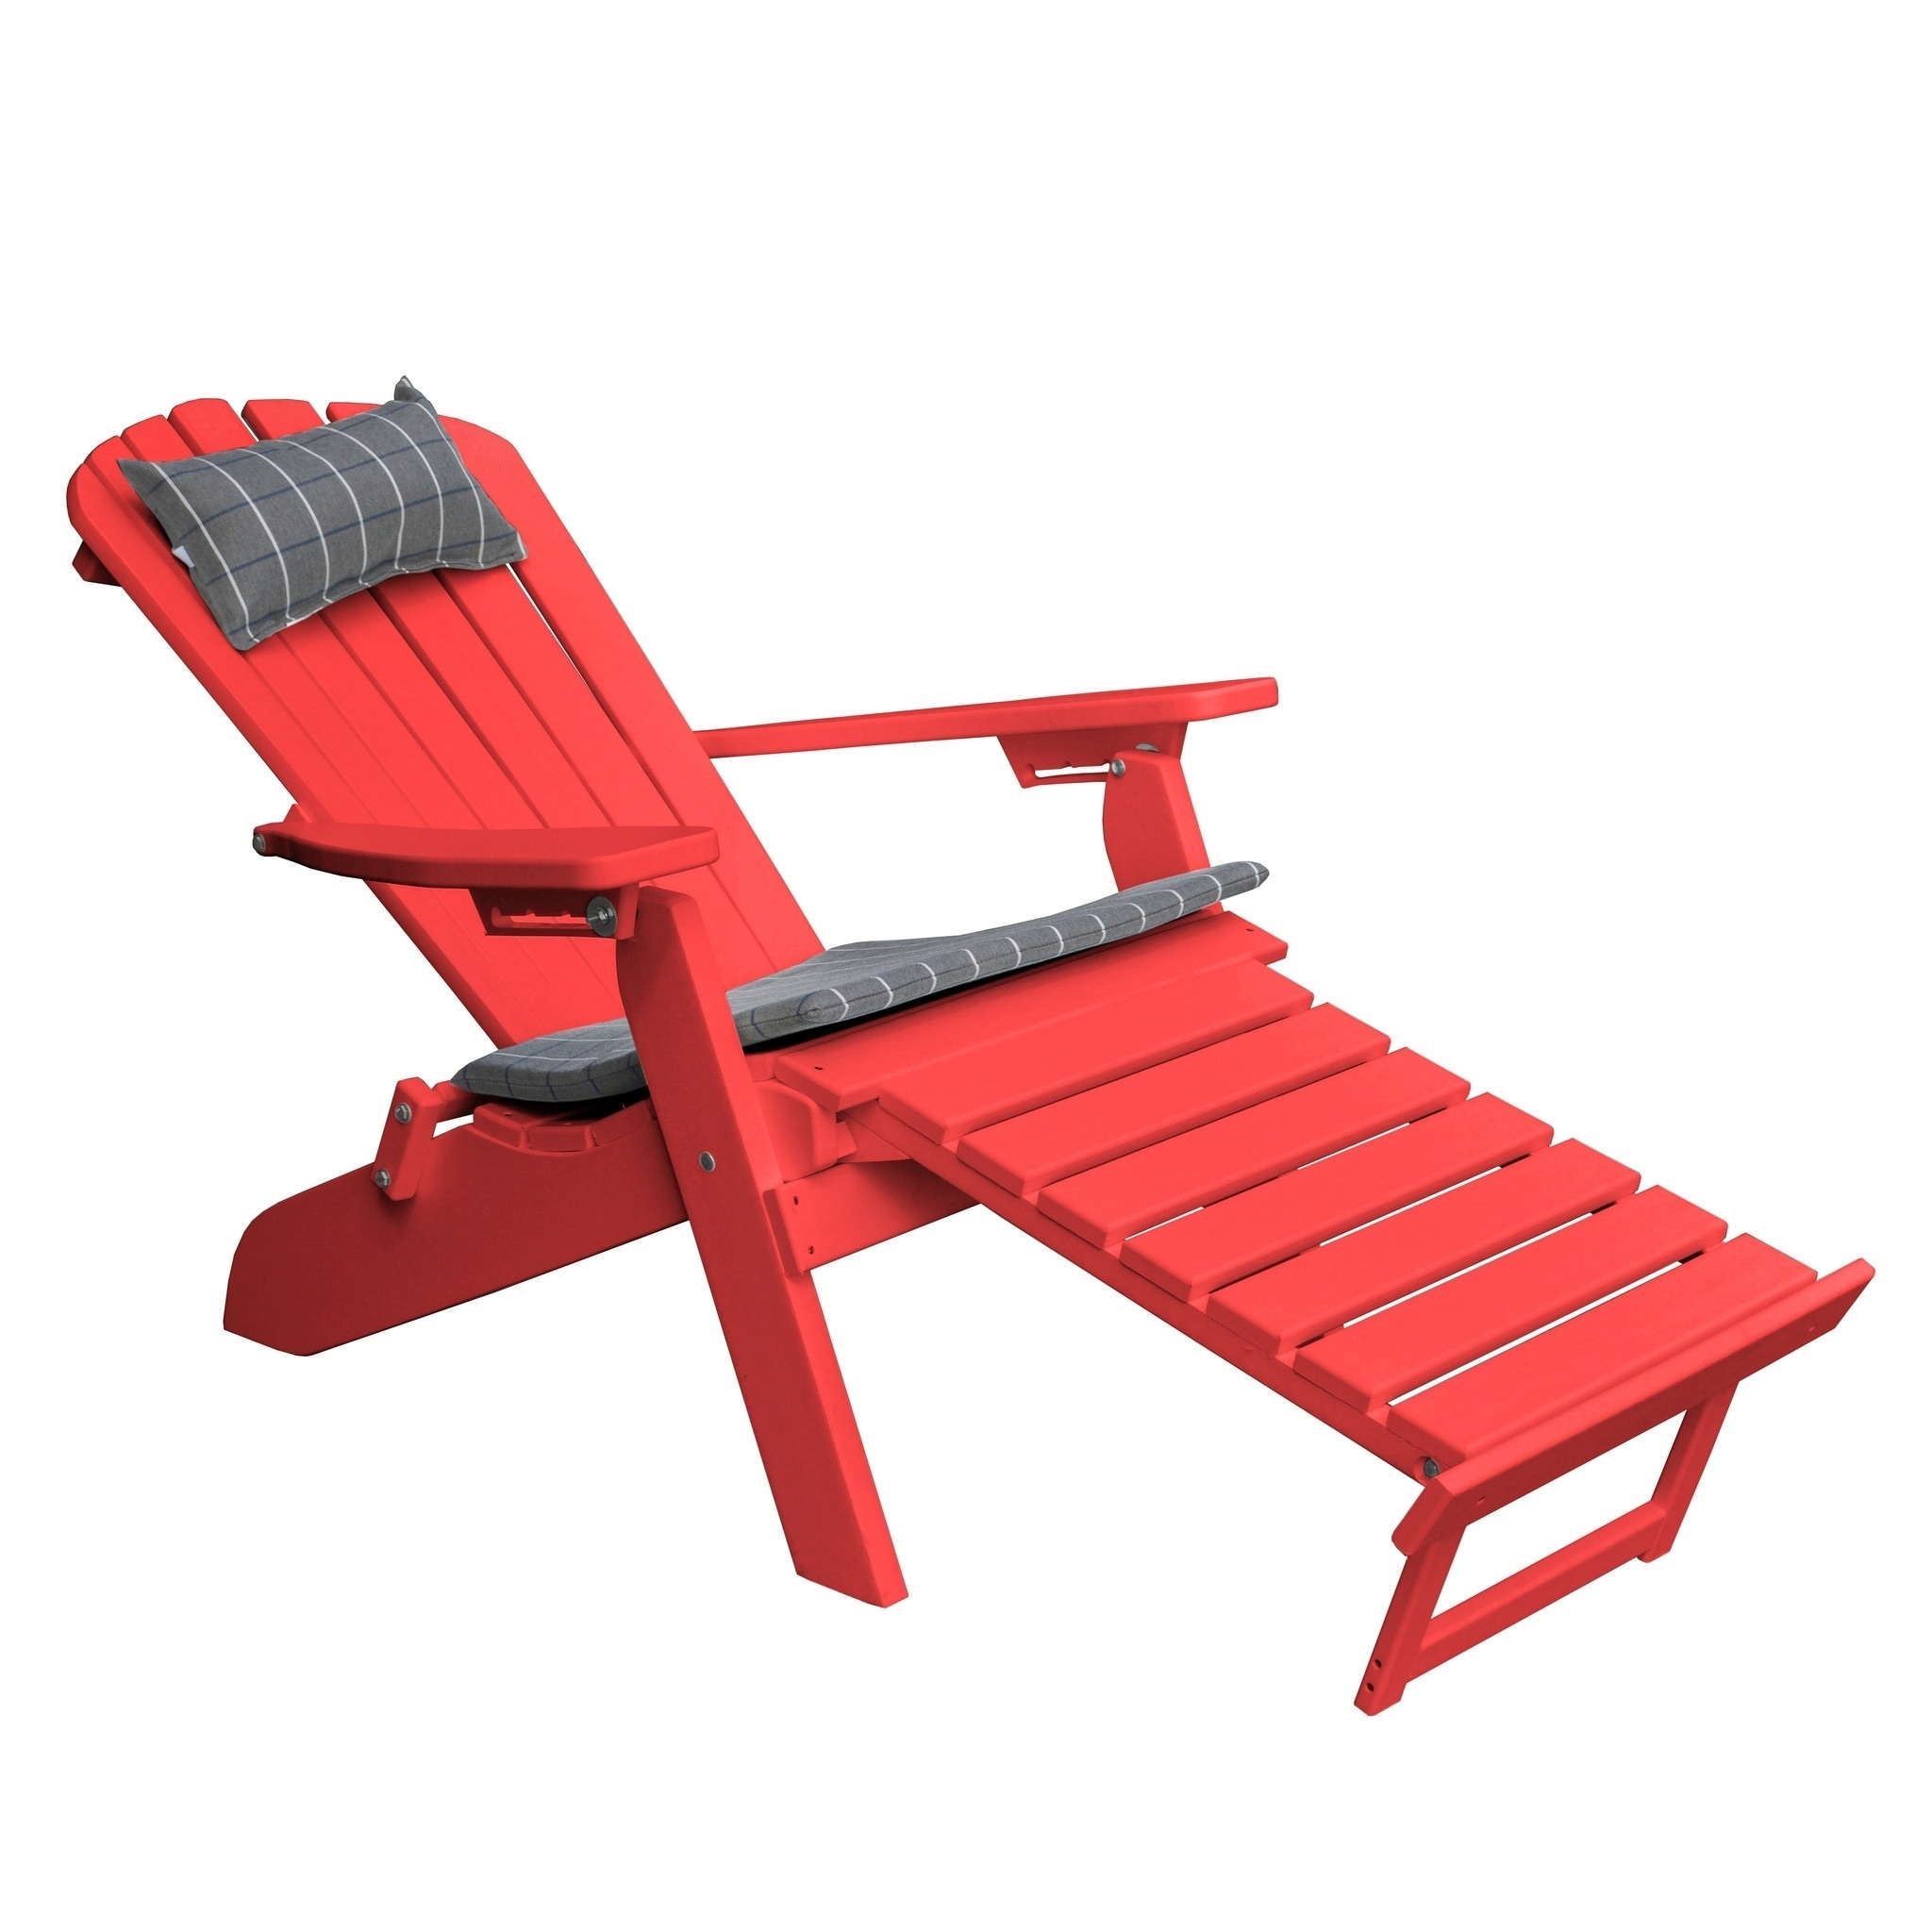 Folding Reclining Adirondack Chair With Pullout Ottoman Recycled Plastic